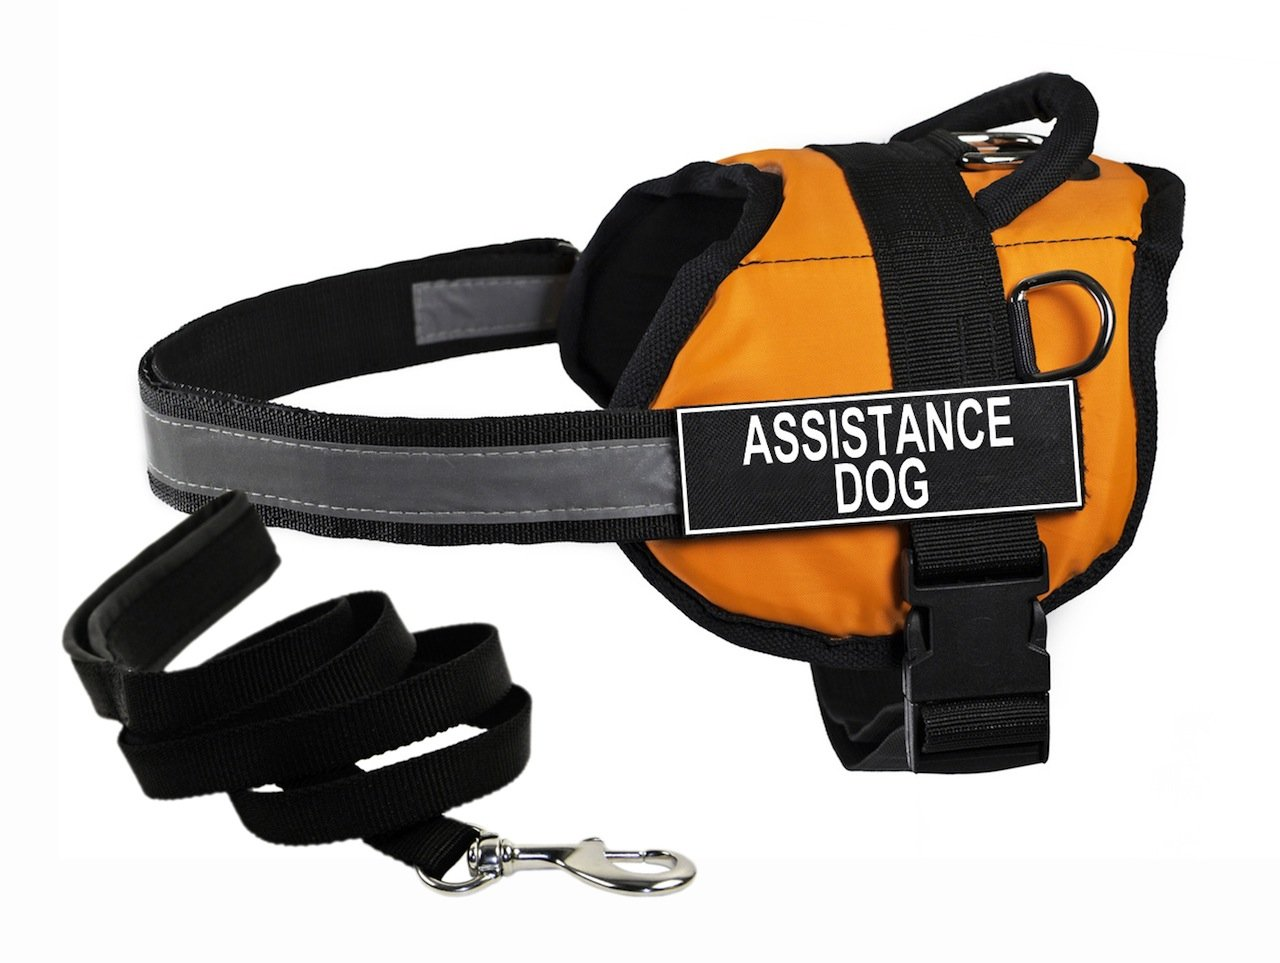 Dean & Tyler's DT Works orange ASSISTANCE DOG Harness with, X-Small, and Black 6 ft Padded Puppy Leash.